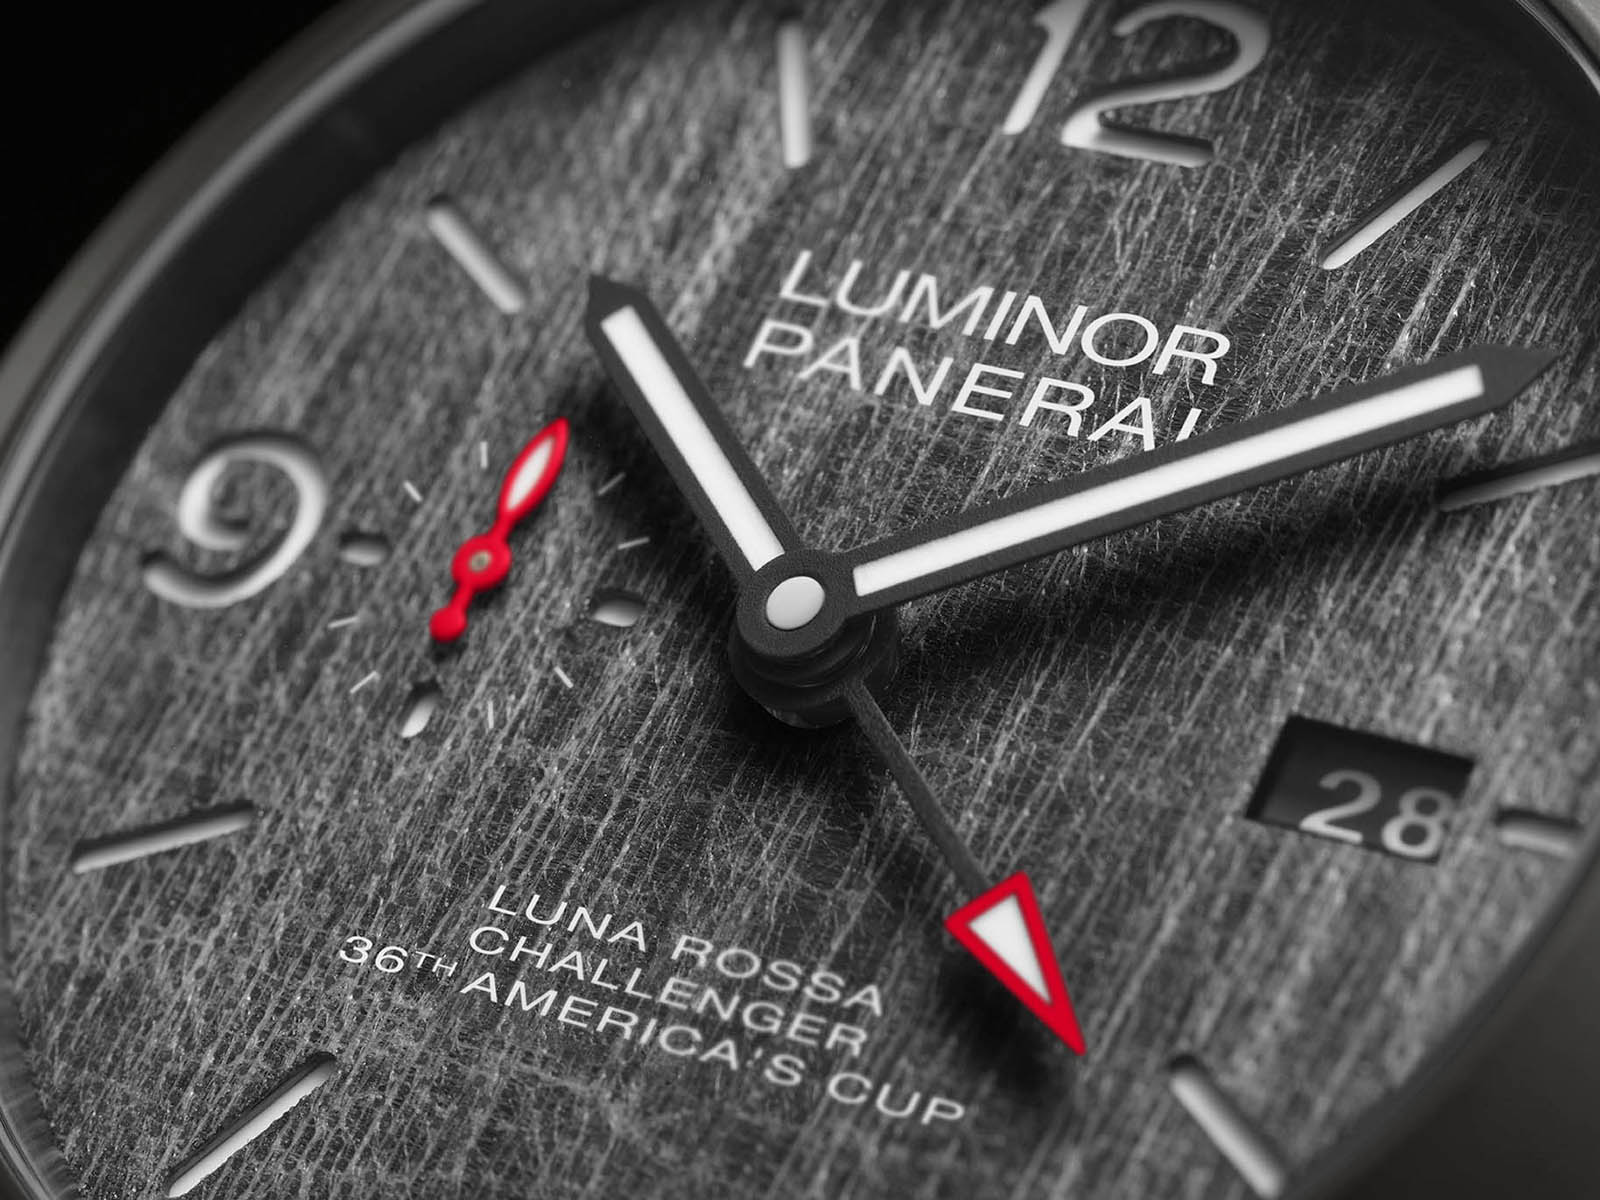 panerai-luminor-luna-rossa-12.jpg